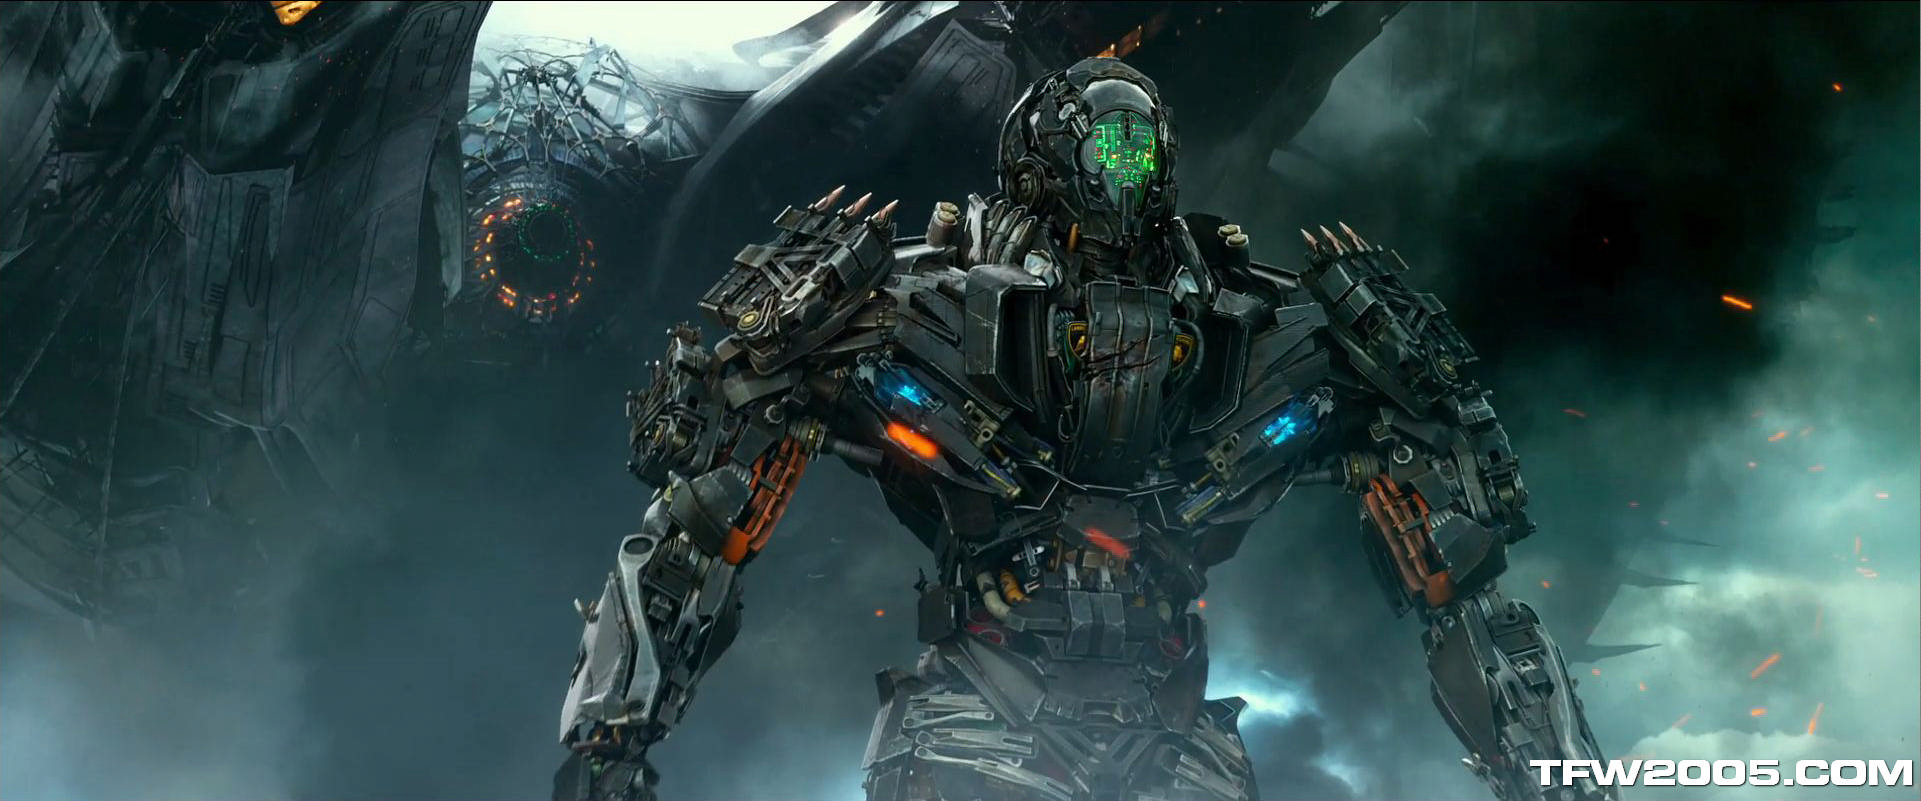 Hd Car Lock Screen Wallpaper Transformers Live Action Movies And The Question Of